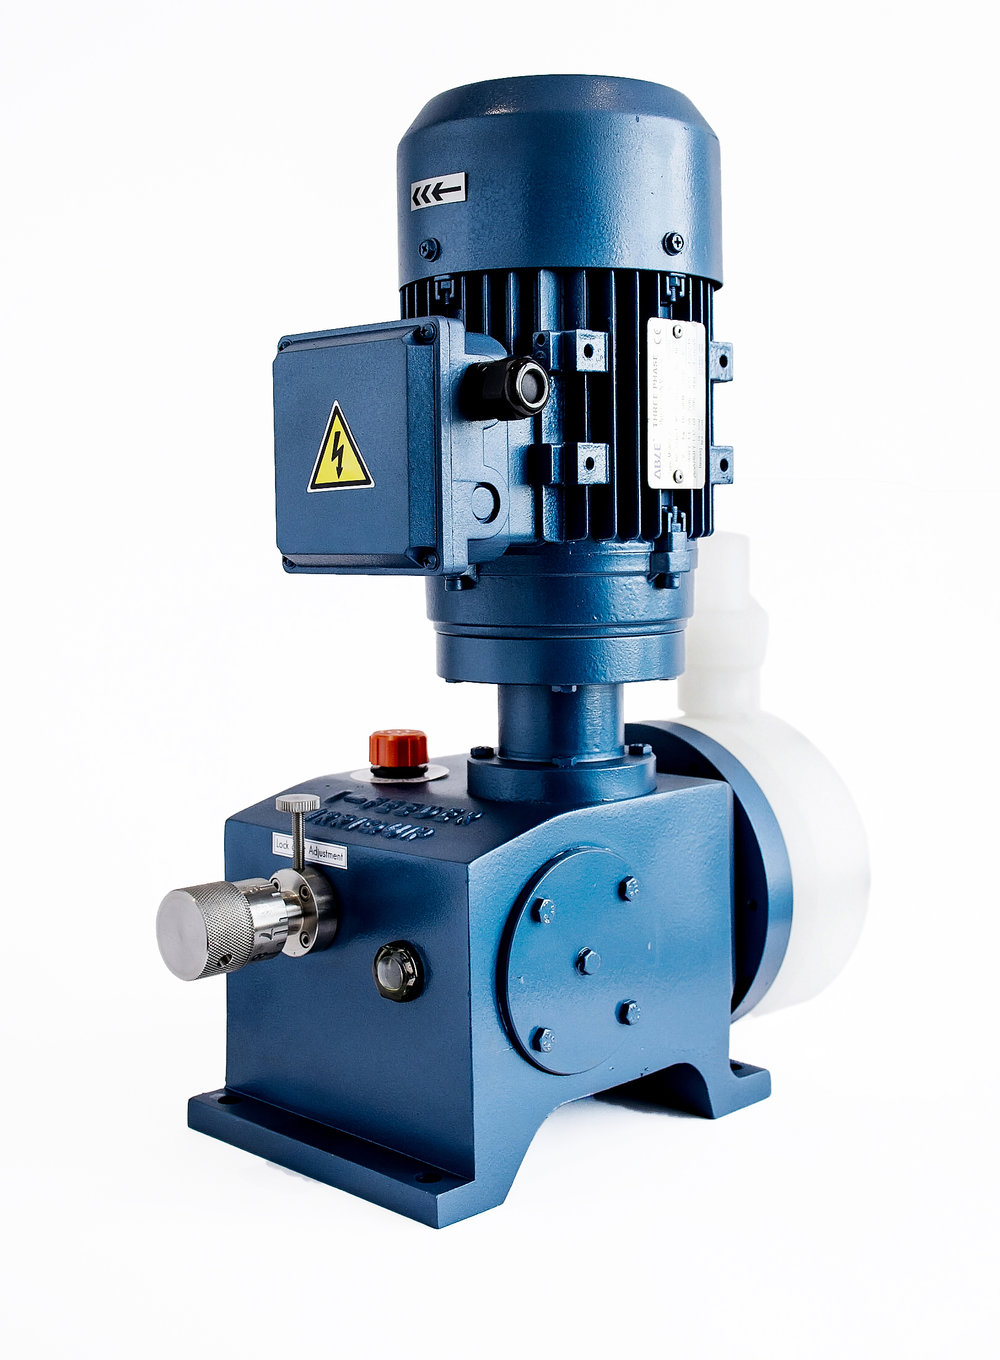 Turnkey and Skid systems - I-Feeder can supply a turnkey system as simple as a dosing pump and a mixer in a frame, to as intricate as required.Skids can include ph/ec control, flowmeters, calibration columns, mutiple pump control, multiple mixer control, air valves, prv valves, solenoid valves and air chambers.